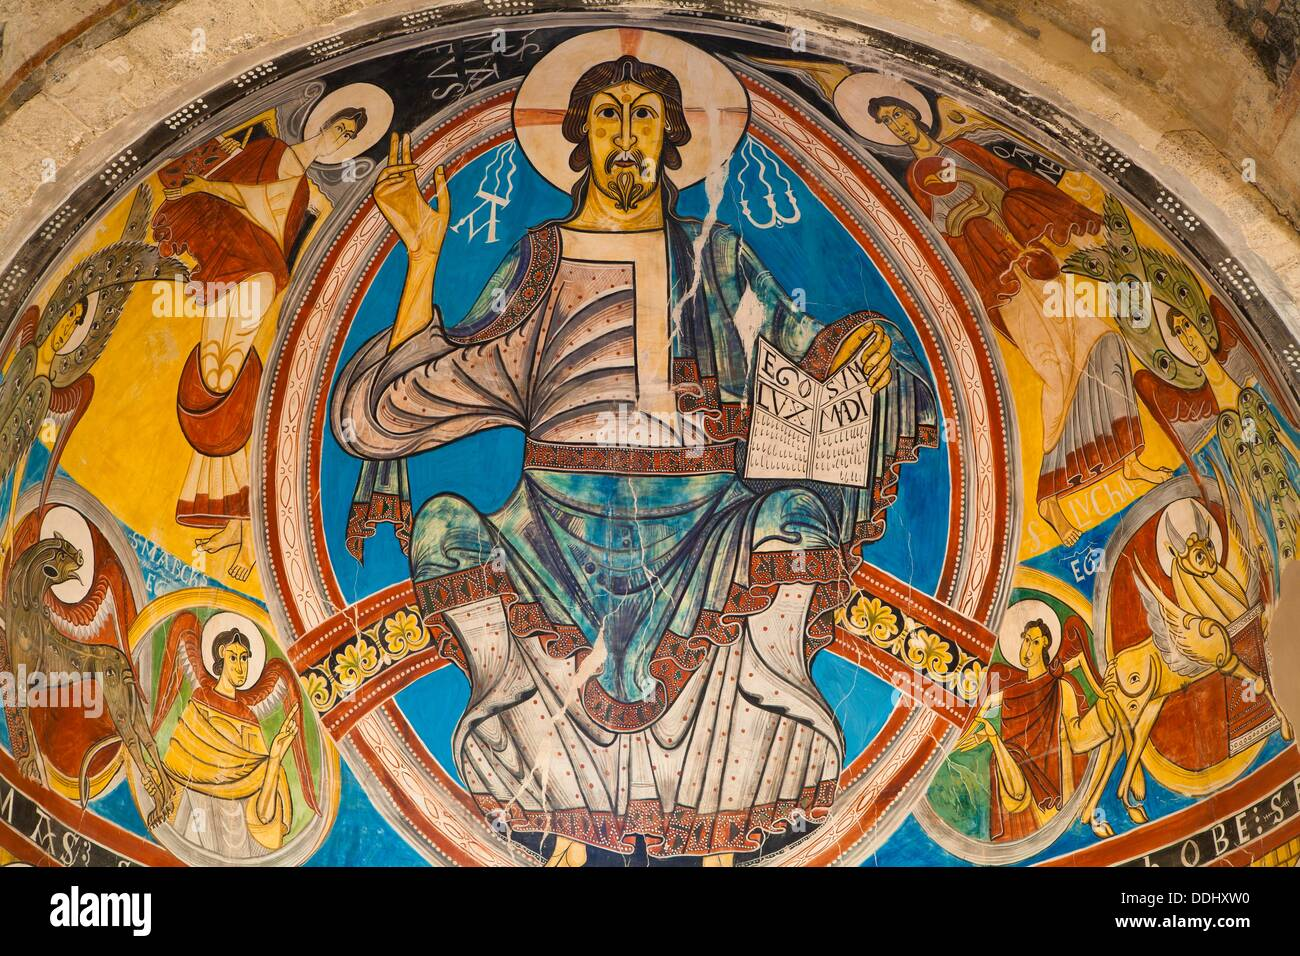 Pantocrator Christ in majesty Romanesque mural painting  Church of San Climent de Taüll  Valle de Boi  Alta Ribagorça, Pyrenees - Stock Image